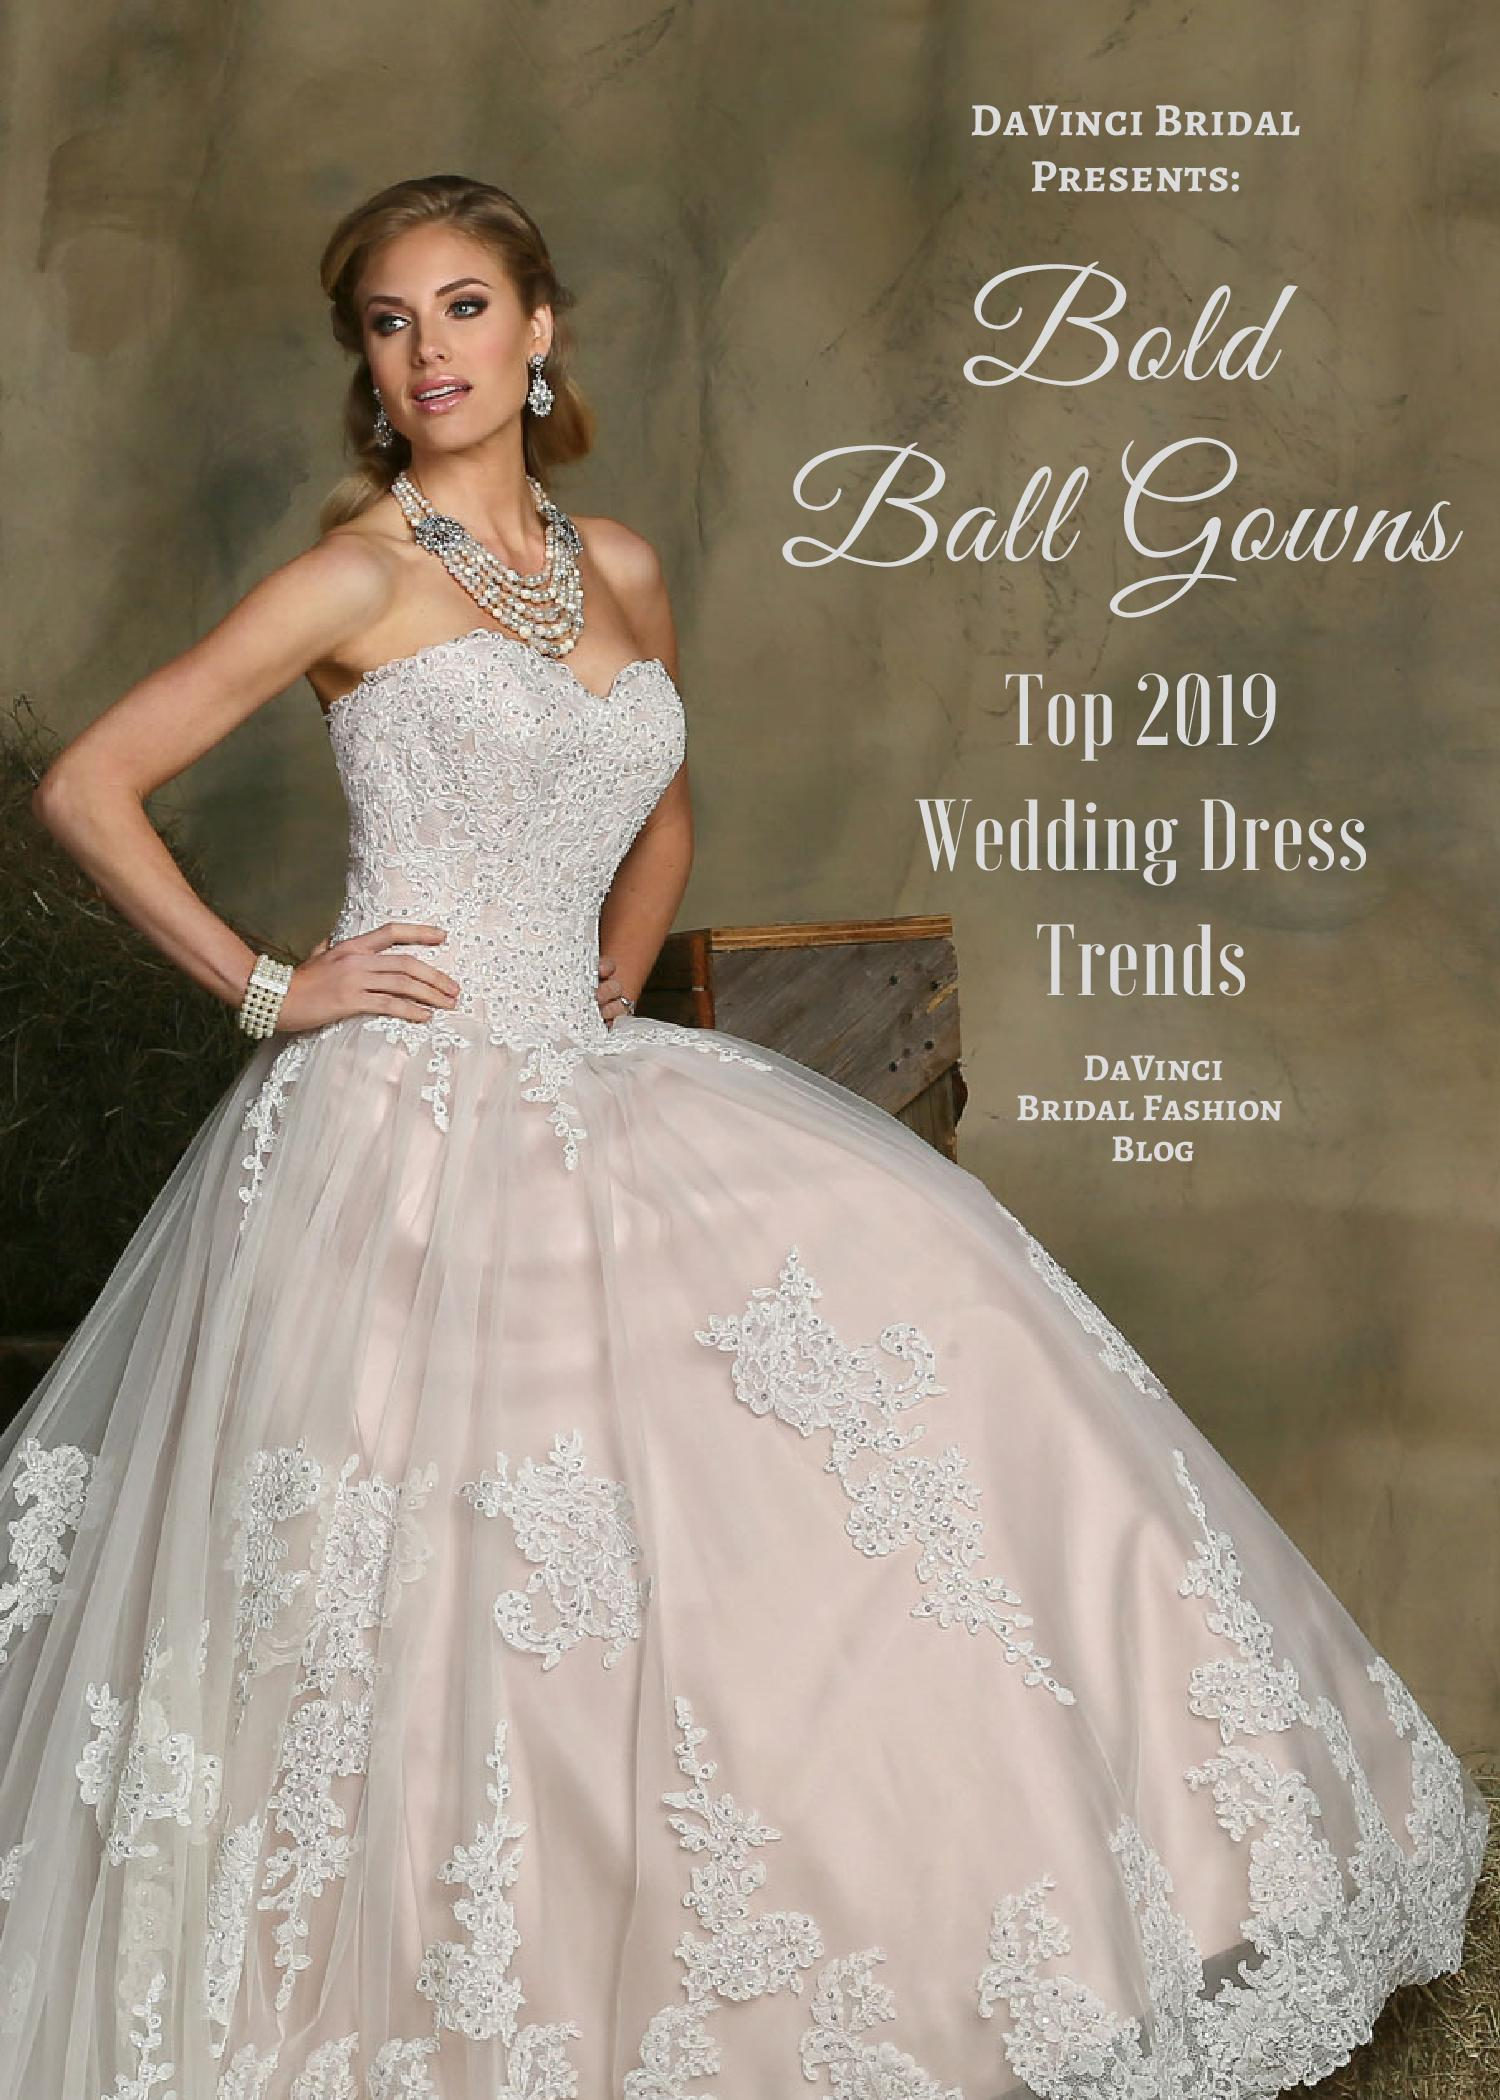 af45abde289 Top 2019 Wedding Dress Trends Bold Ball Gowns – DaVinci Bridal Fashion Blog